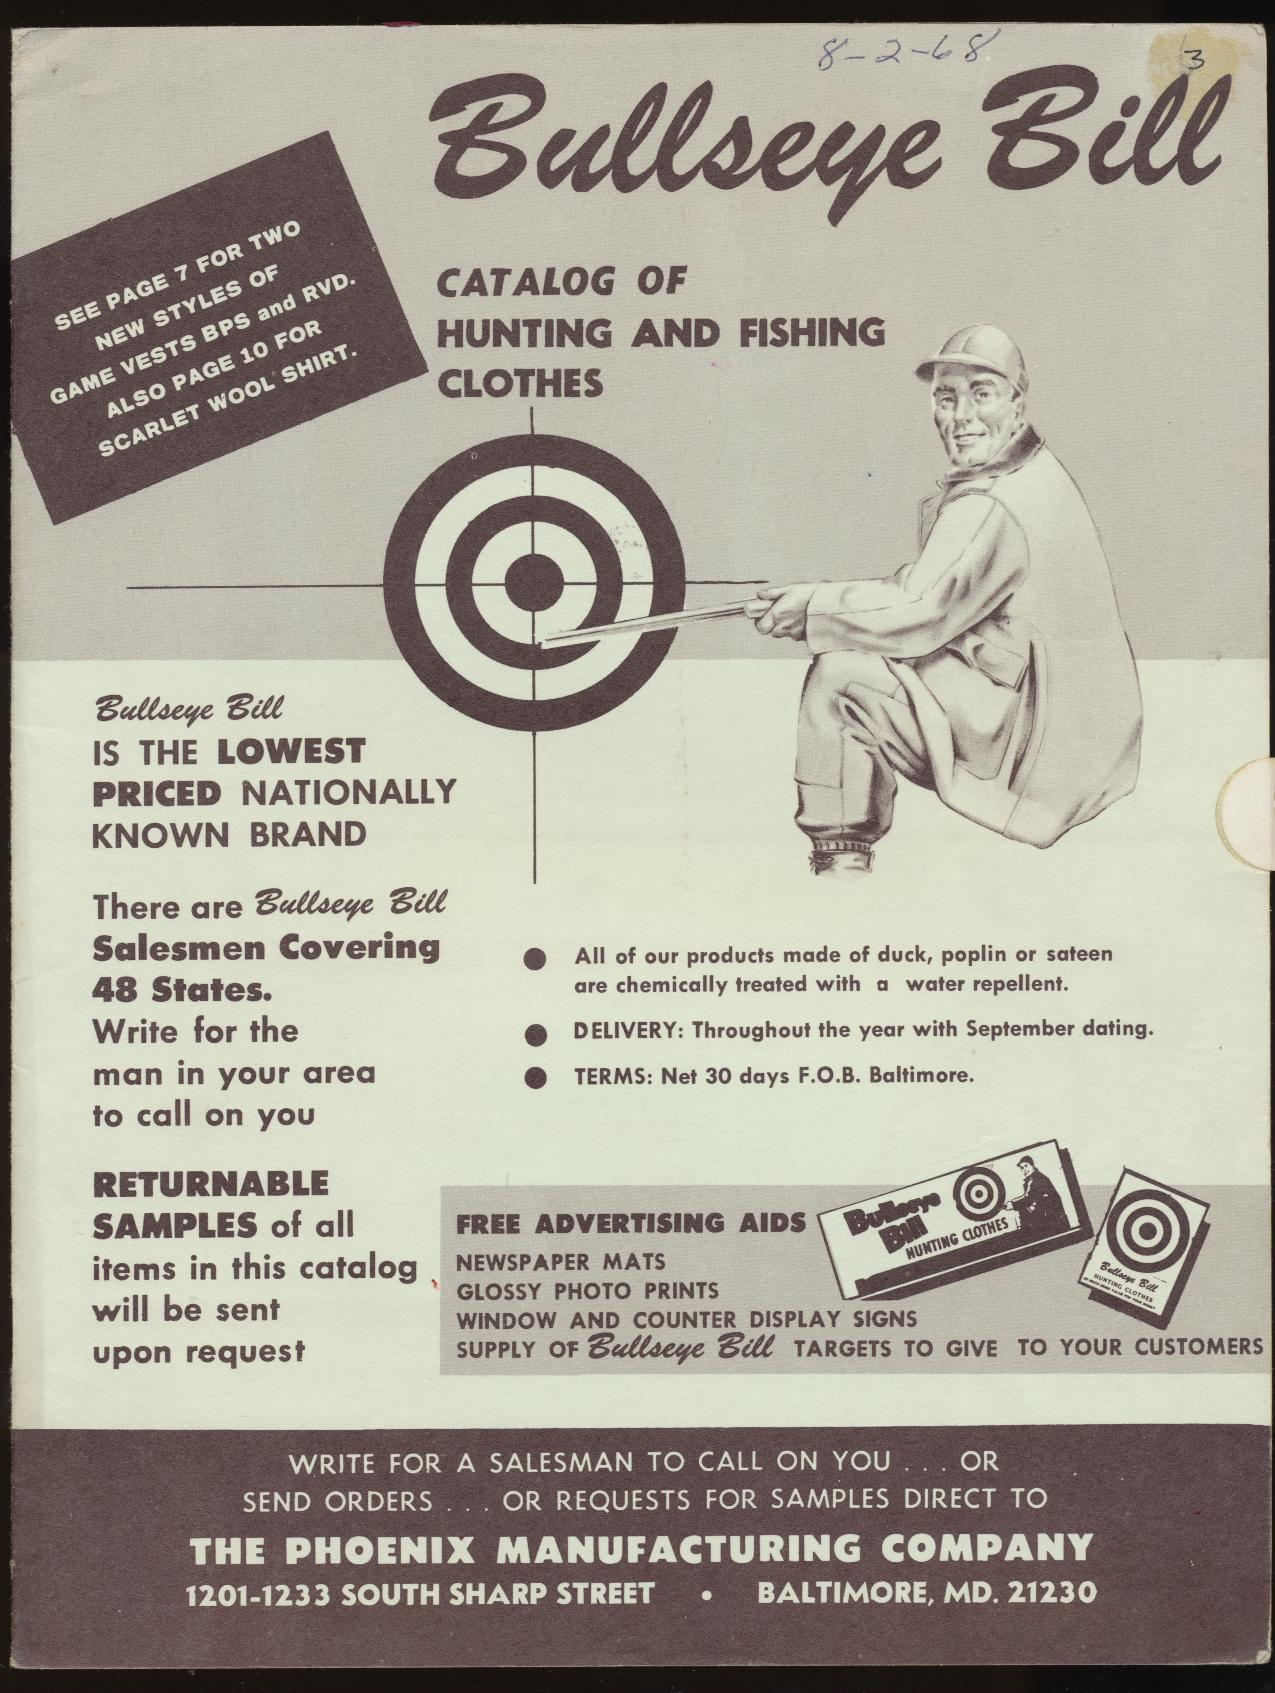 1968 Bullseye Bill Hunting/Fishing Clothes Dealer Trade Catalog